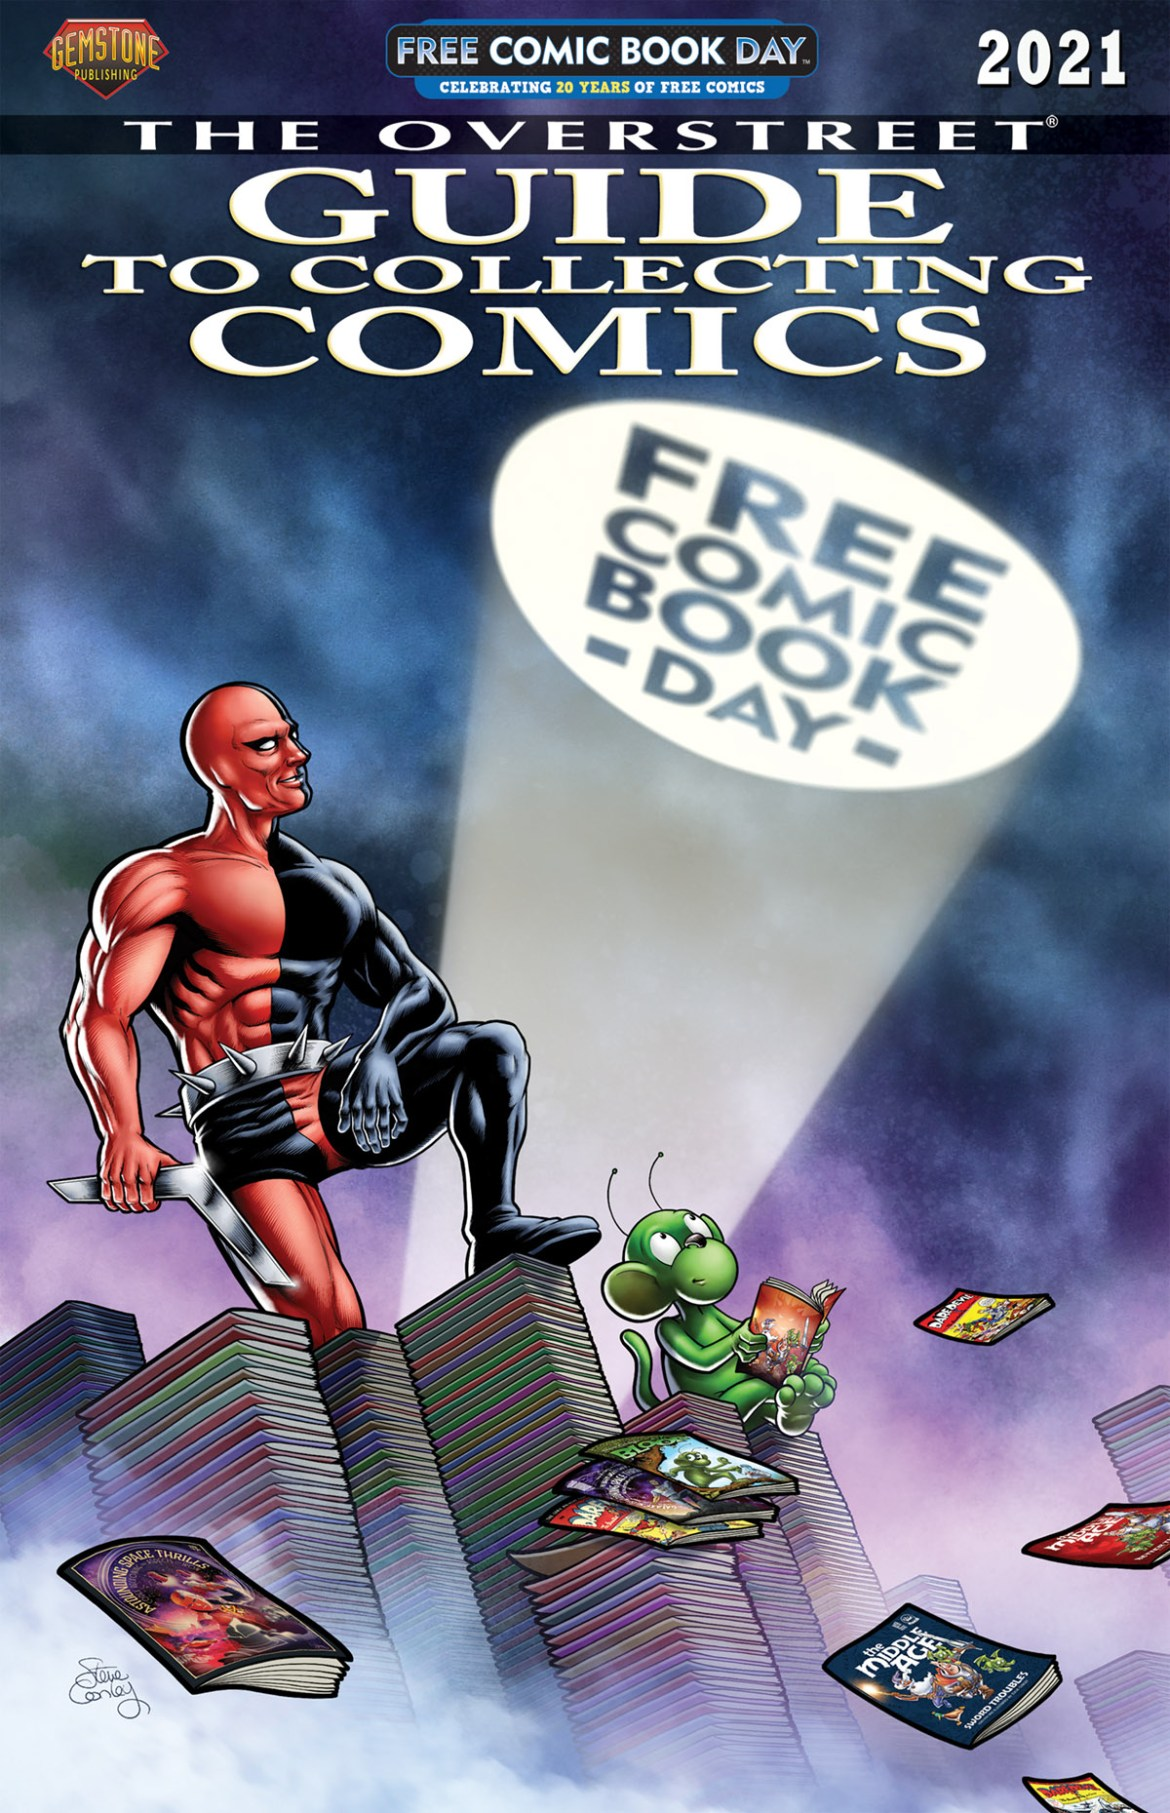 FCBD21_SILVER_Gemstone_Overst-Guide-Coll-Comics Complete Free Comic Book Day 2021 comic book line-up announced